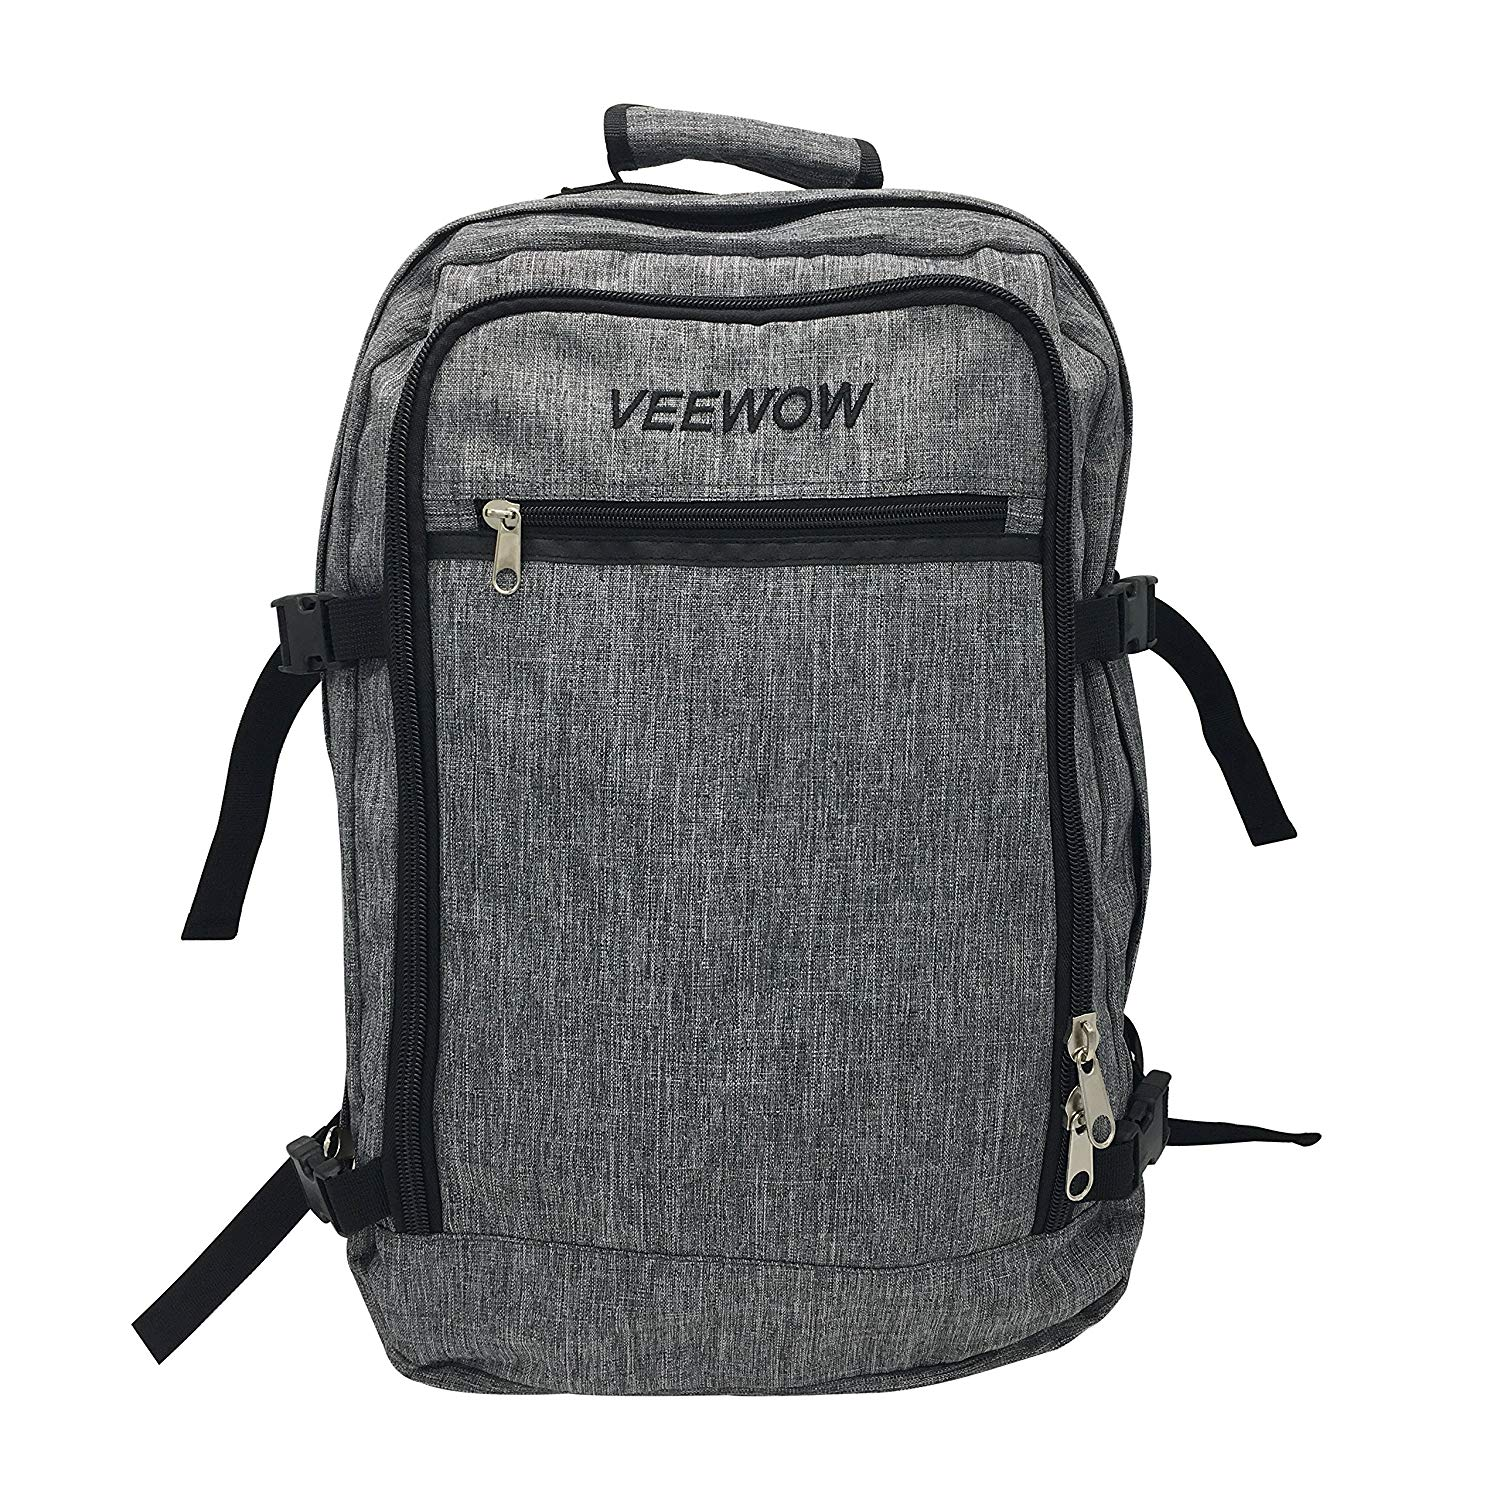 Cheap Best Hand Carry Luggage Find Best Hand Carry Luggage Deals On Line At Alibaba Com